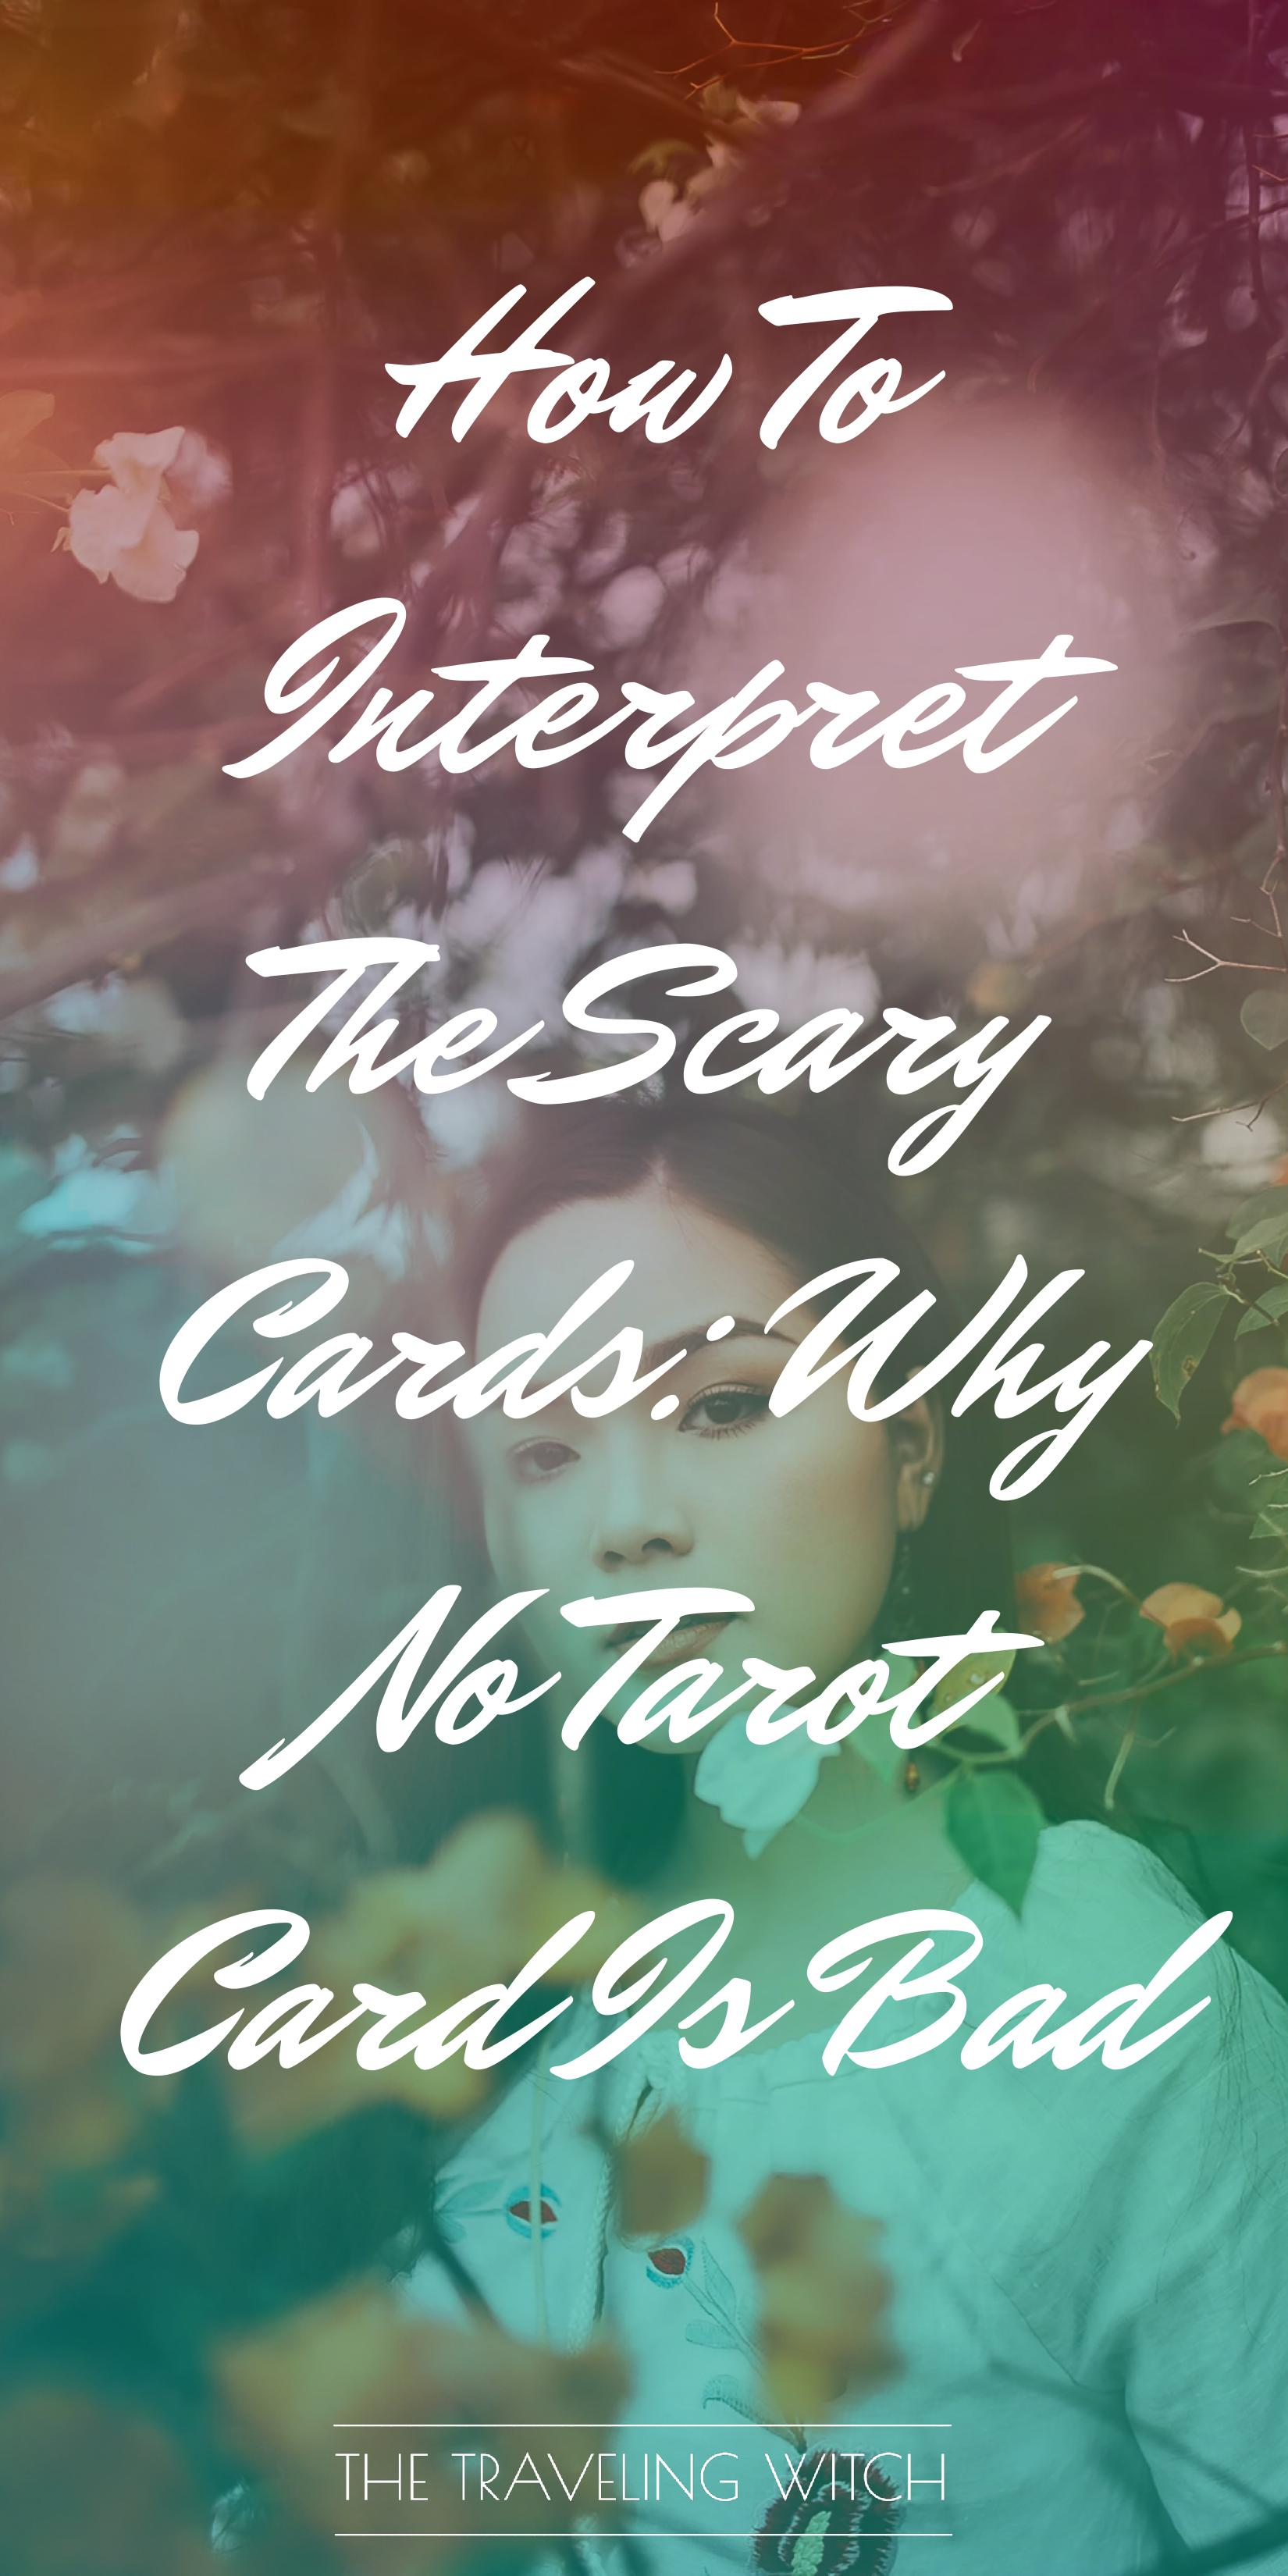 How To Interpret The Scary Cards: Why No Tarot Card Is Bad // Witchcraft // Magic // The Traveling Witch